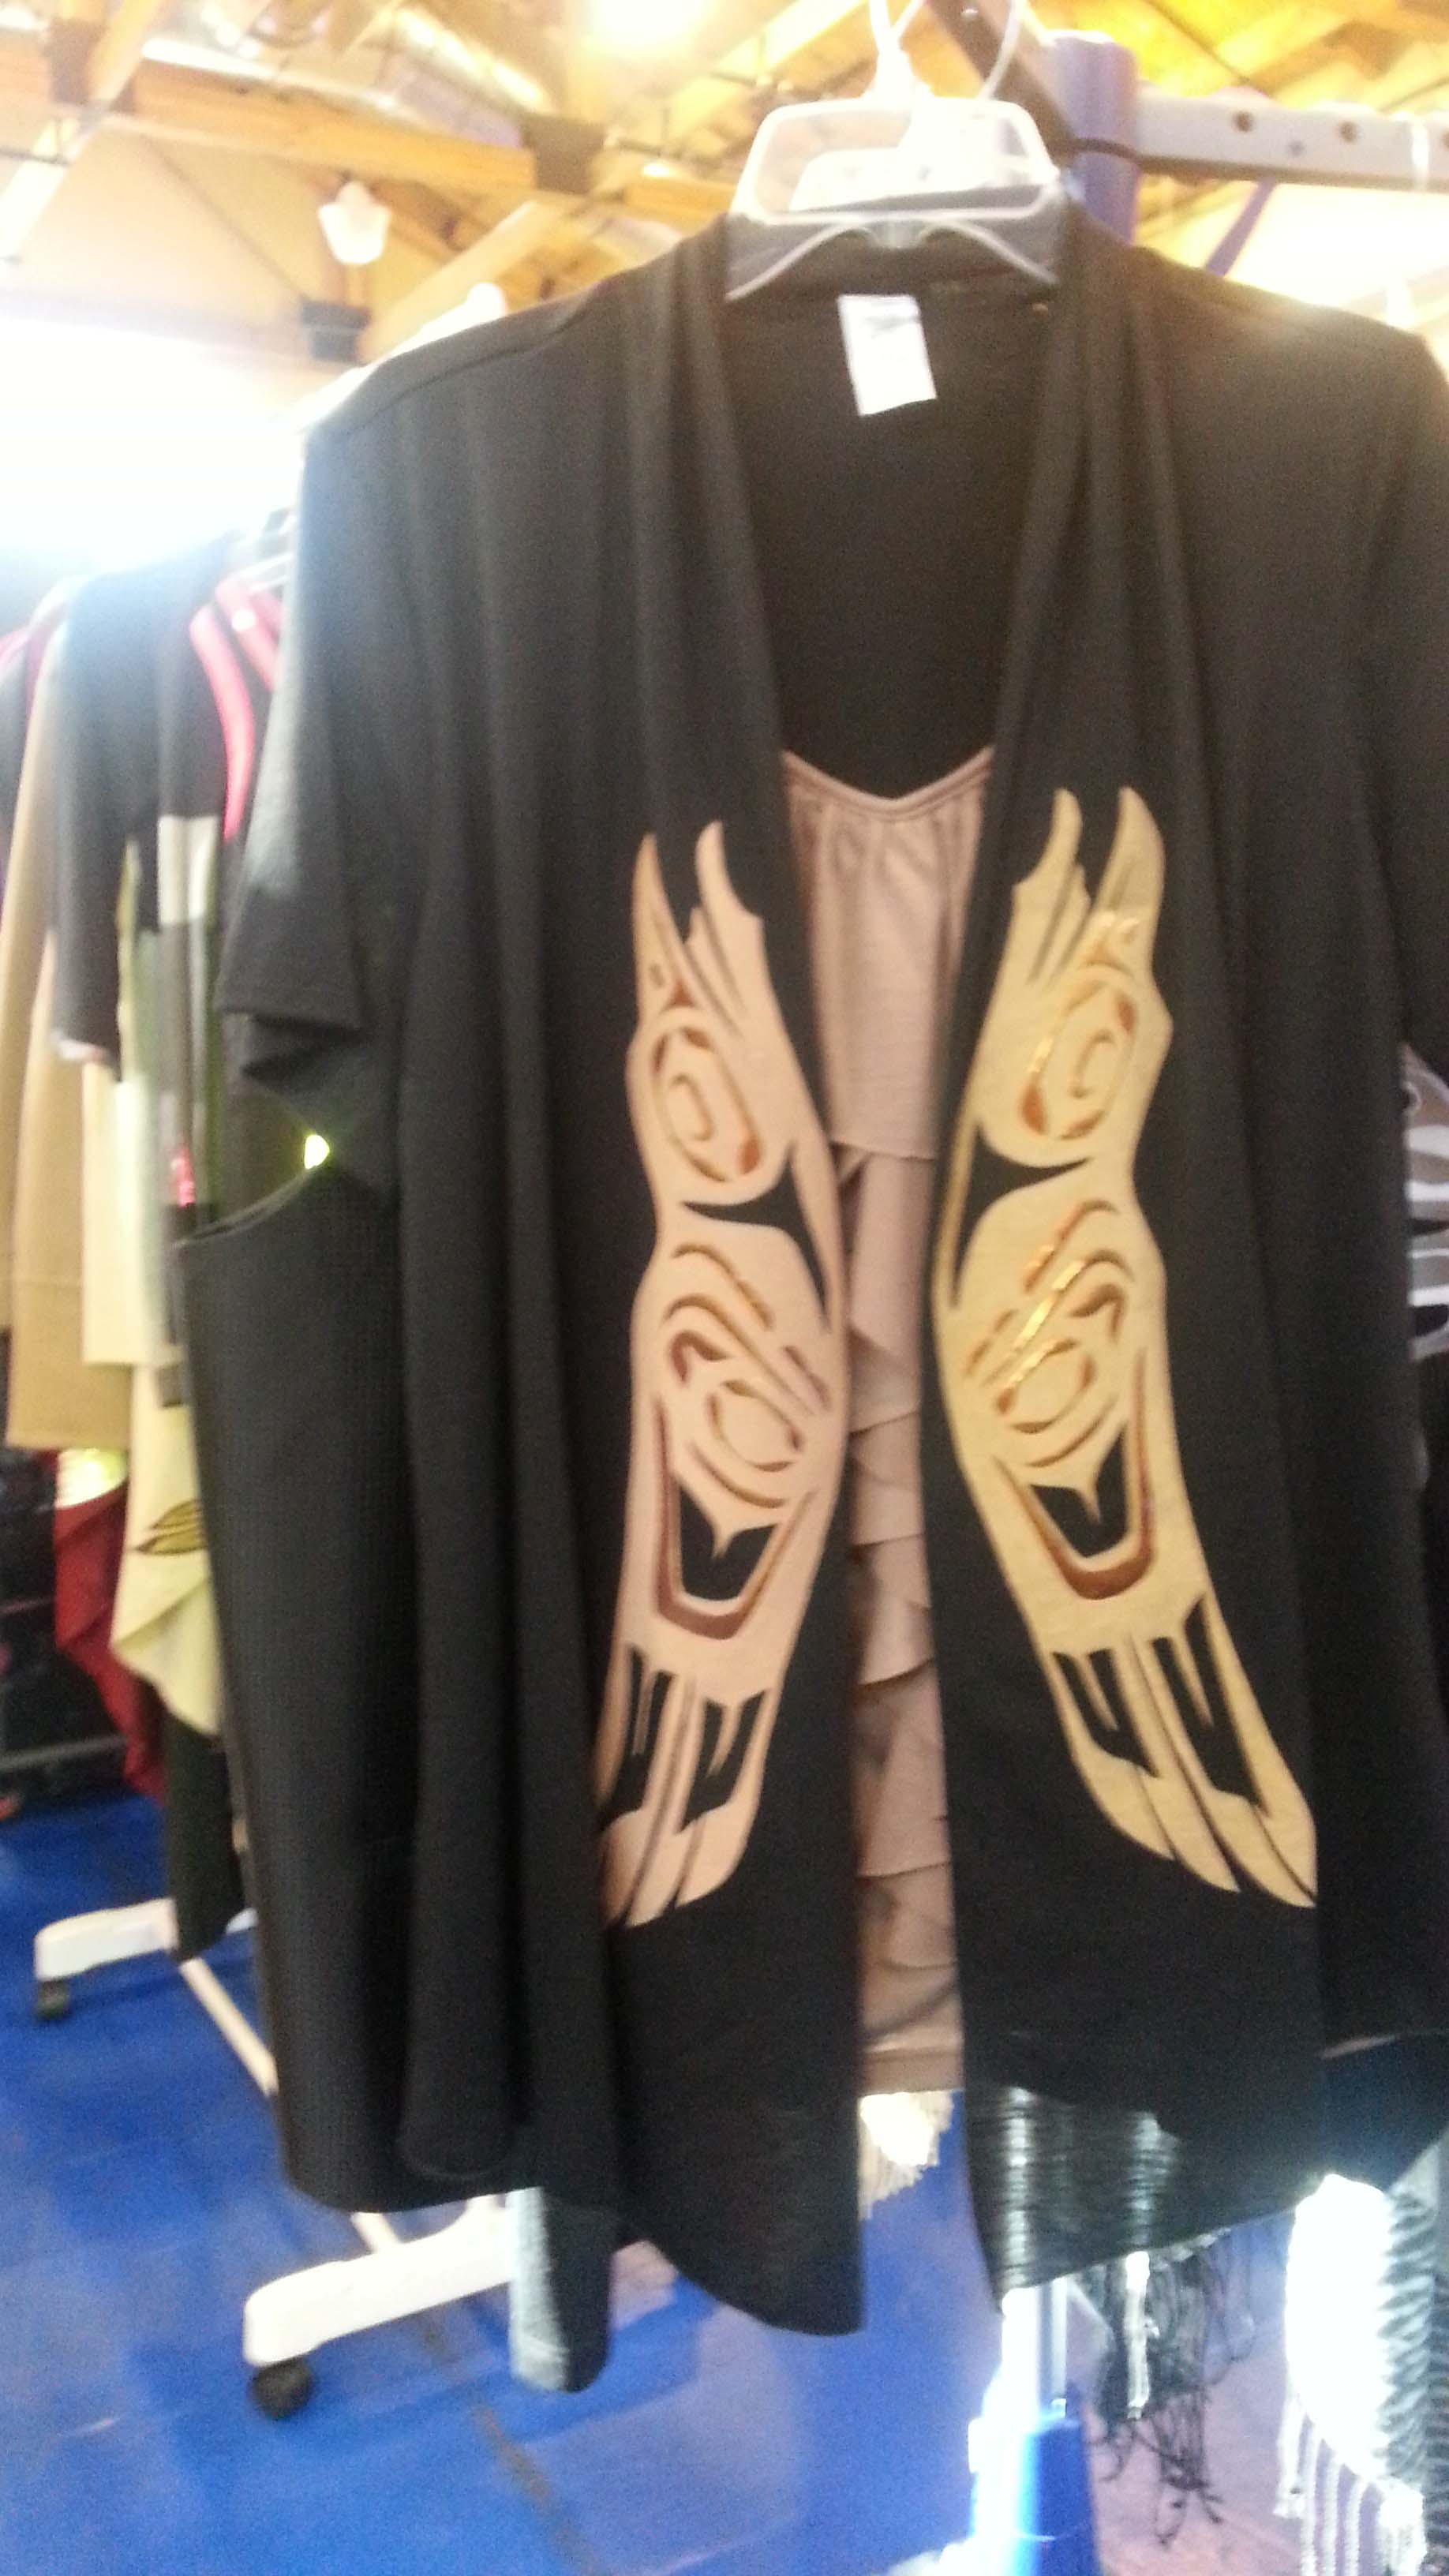 Among the many native themed crafts is a line of clothing that has been tailored to show off native America designs.